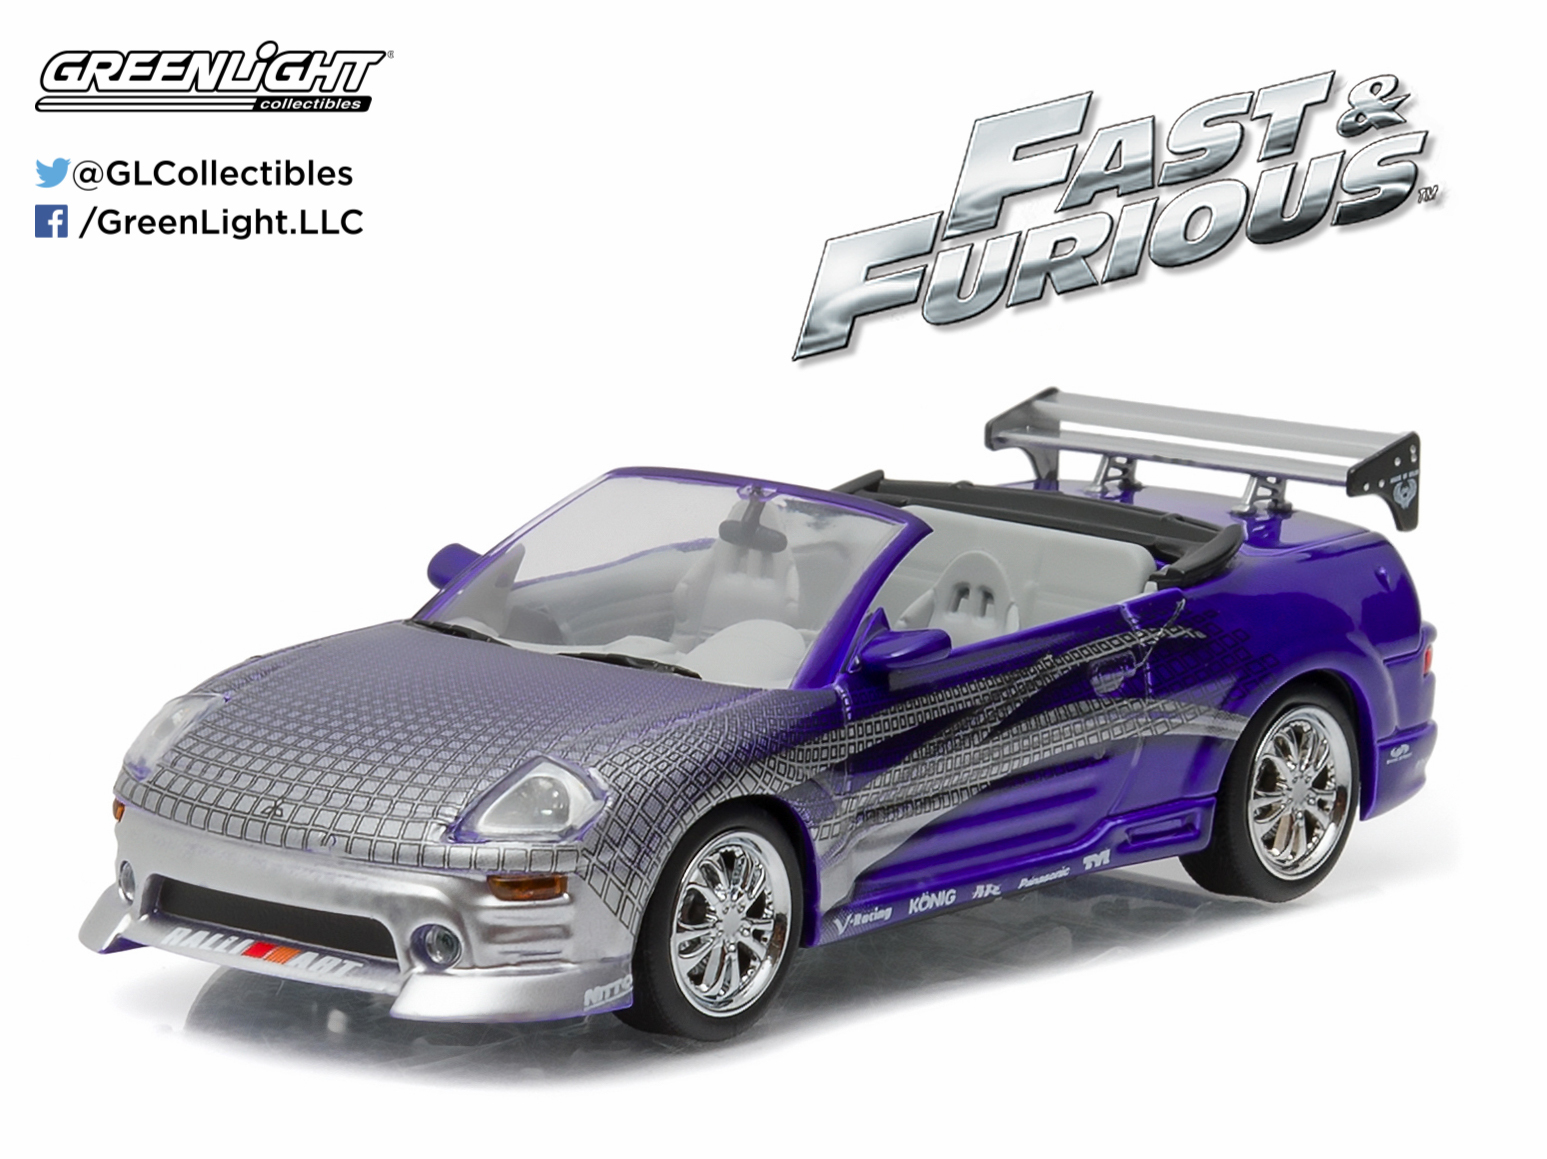 1/43: 2001 Mitsubishi Eclipse Spyder - 2 Fast 2 Furious - Diecast Model image